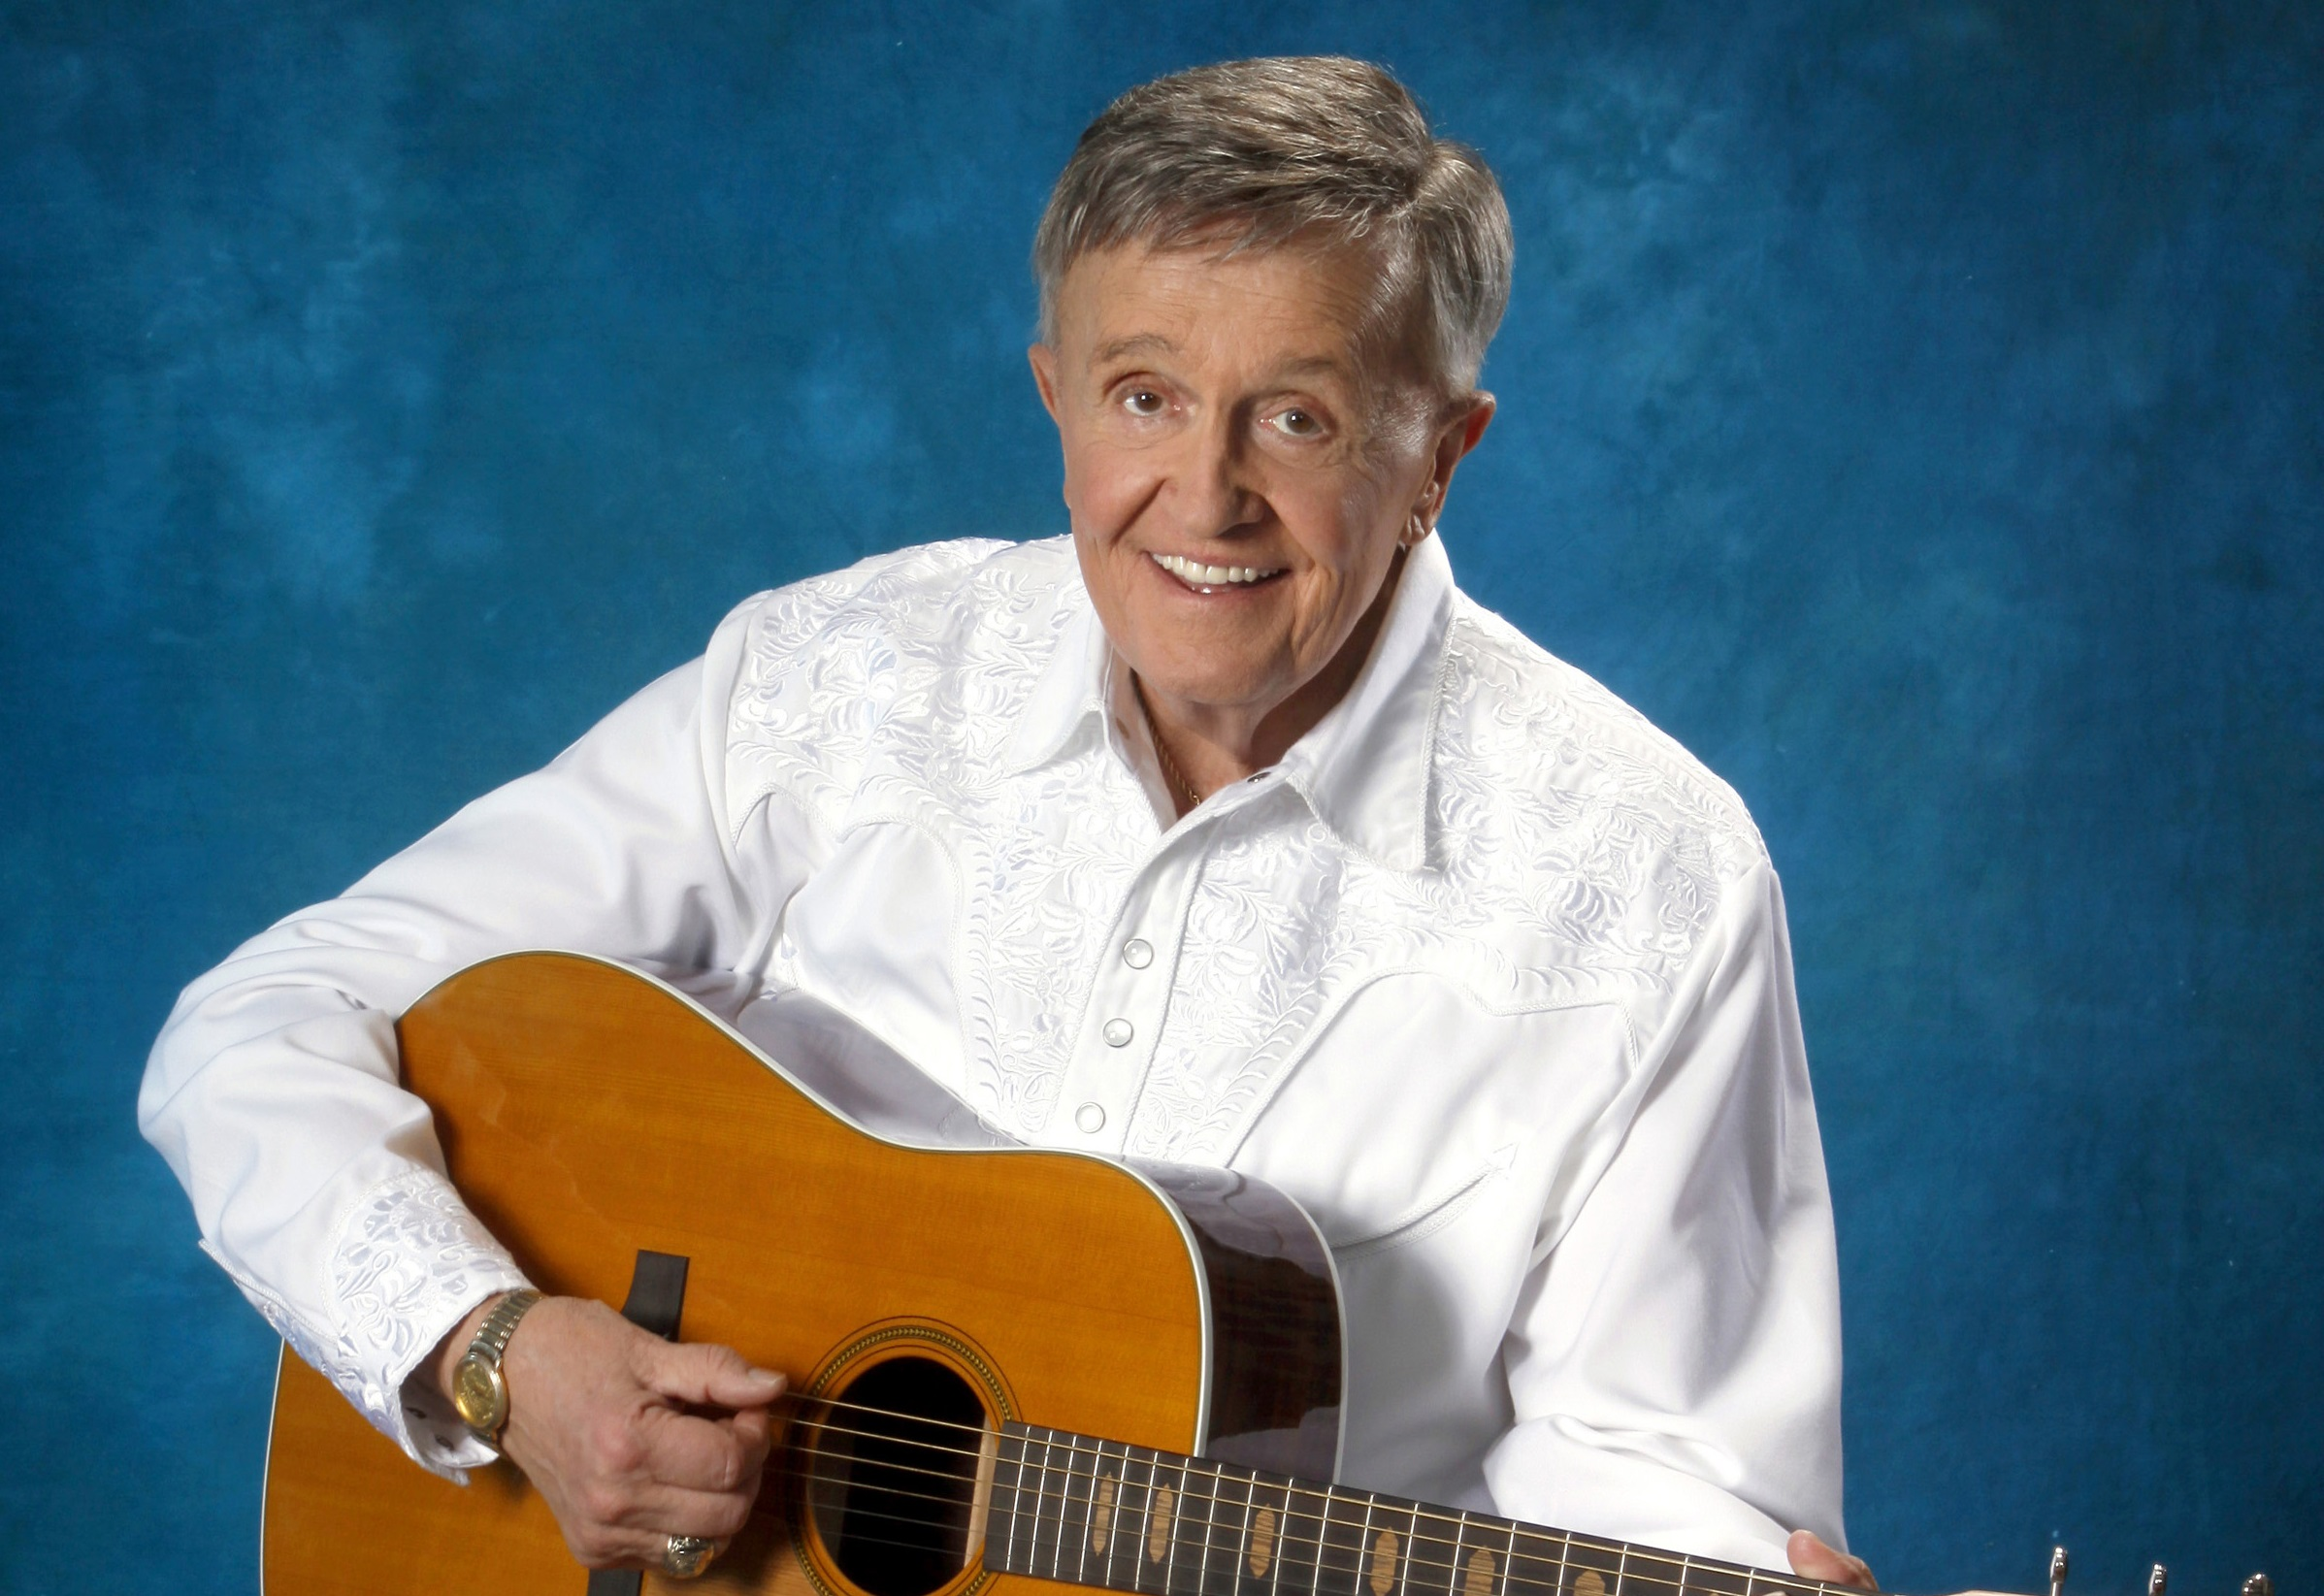 Bill Anderson Phone number, Email Id, Fanmail, Instagram, Tiktok, and Contact Details